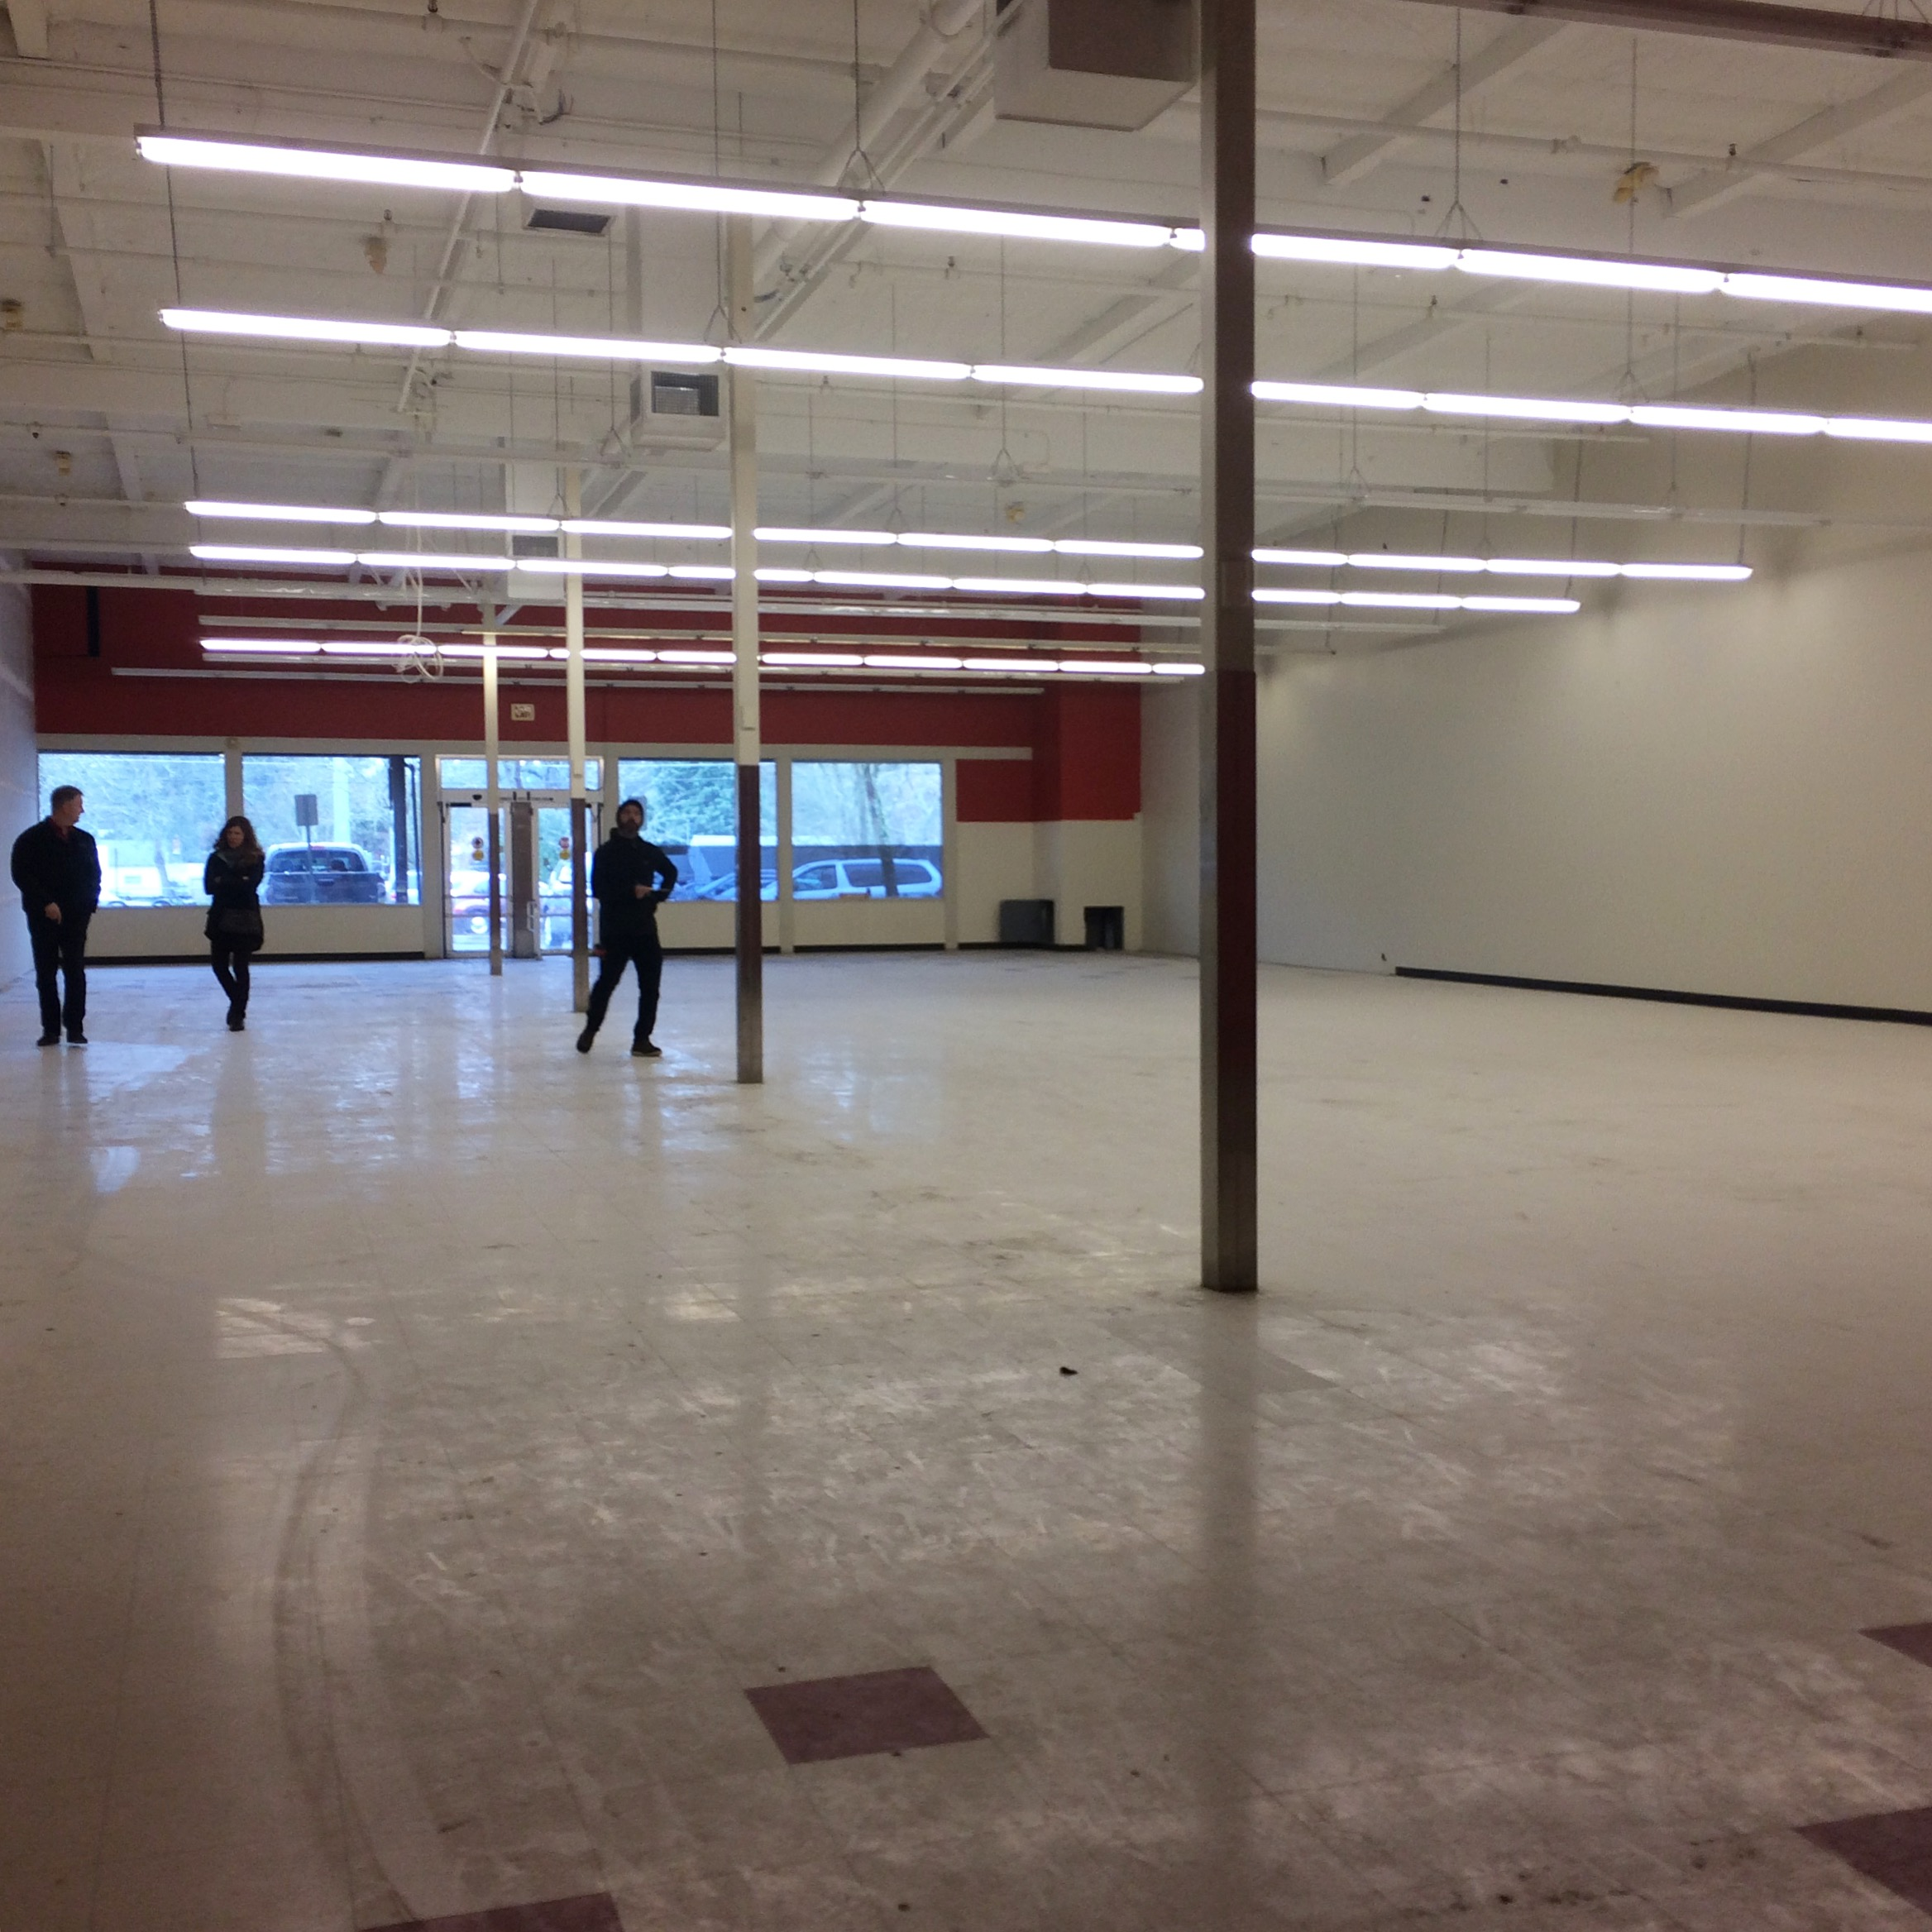 Back to front view of our new space in Milwaukie. *Image shows a large commercial space with dusty tile flooring, in the back are large windows looking out to a parking lot, and a few people examining the room*